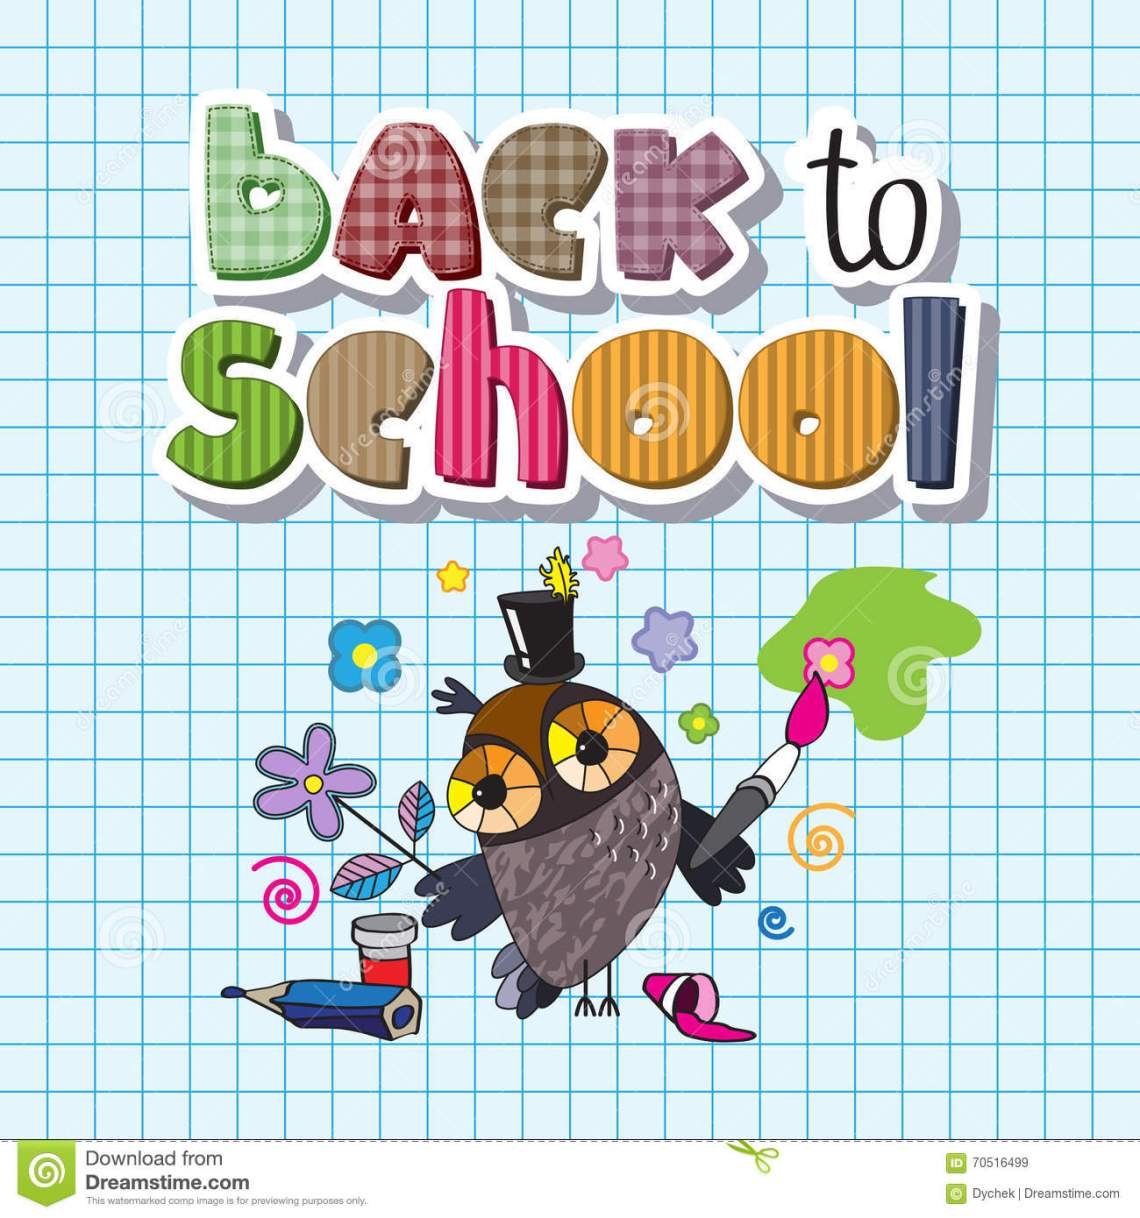 Download The Original Spelling Of The Phrase Back To School Stock ...